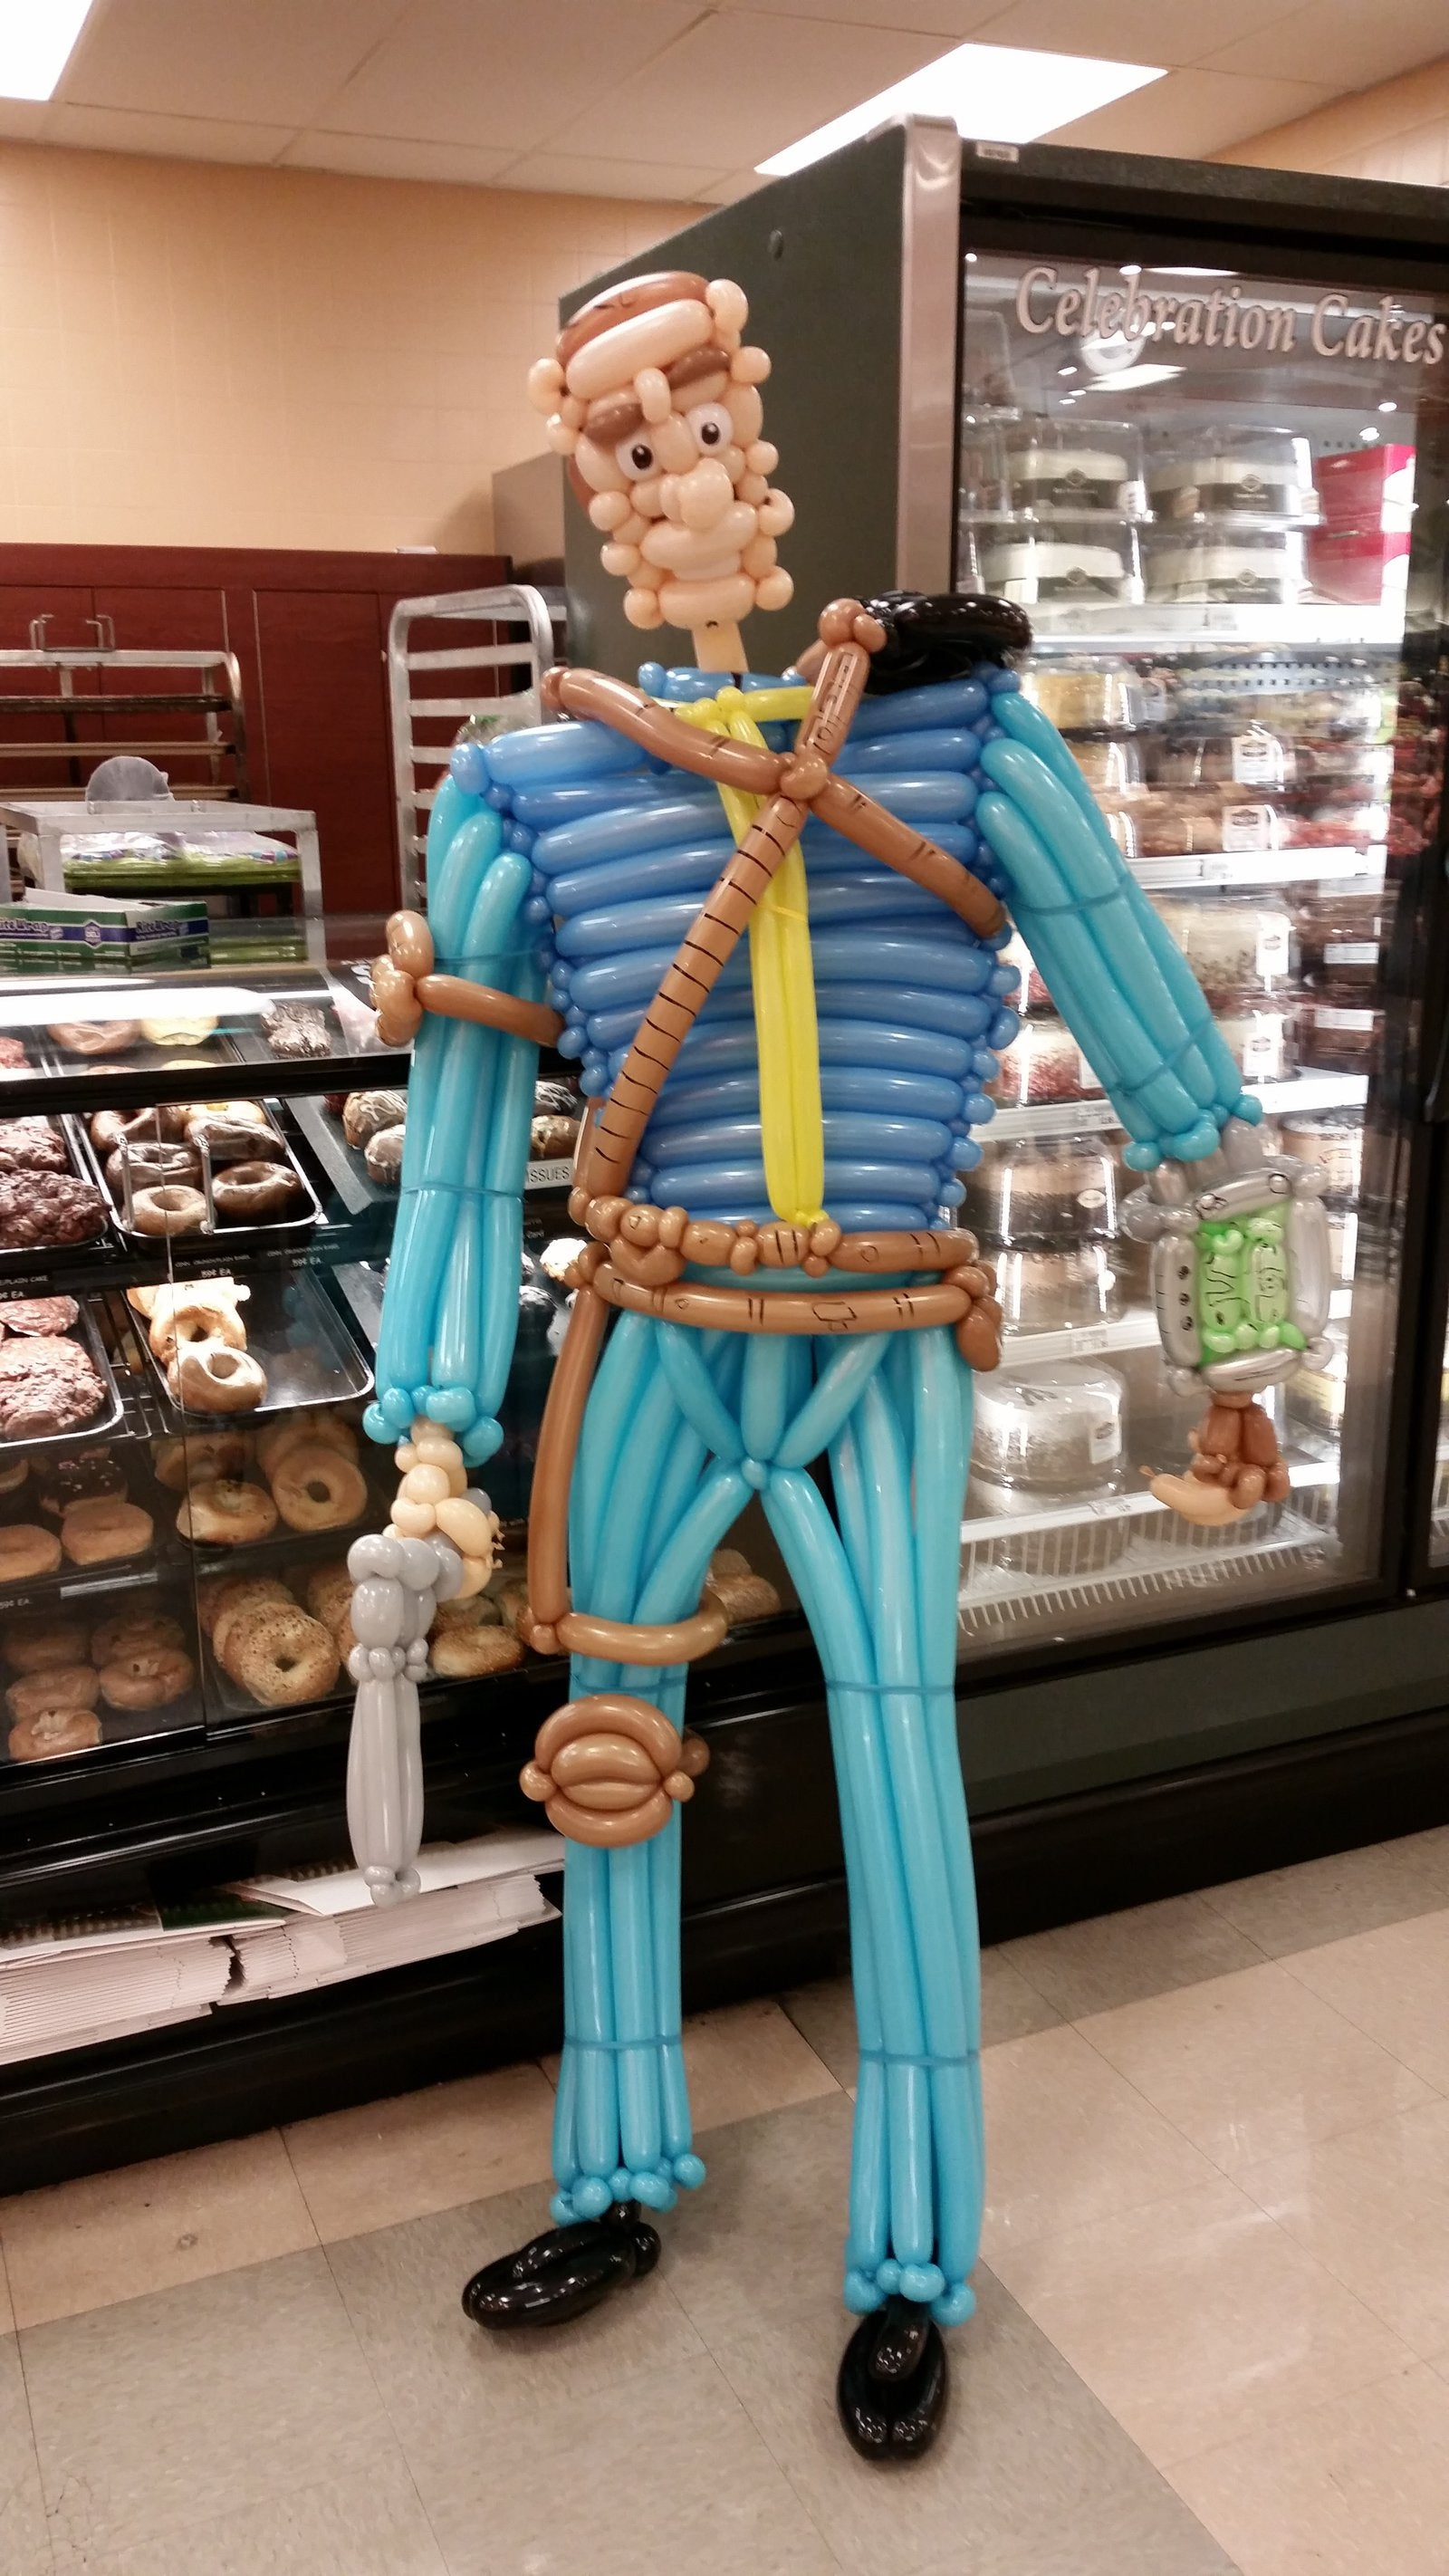 Fallout 3's Lone Wanderer as a Silly Balloon Sculpture